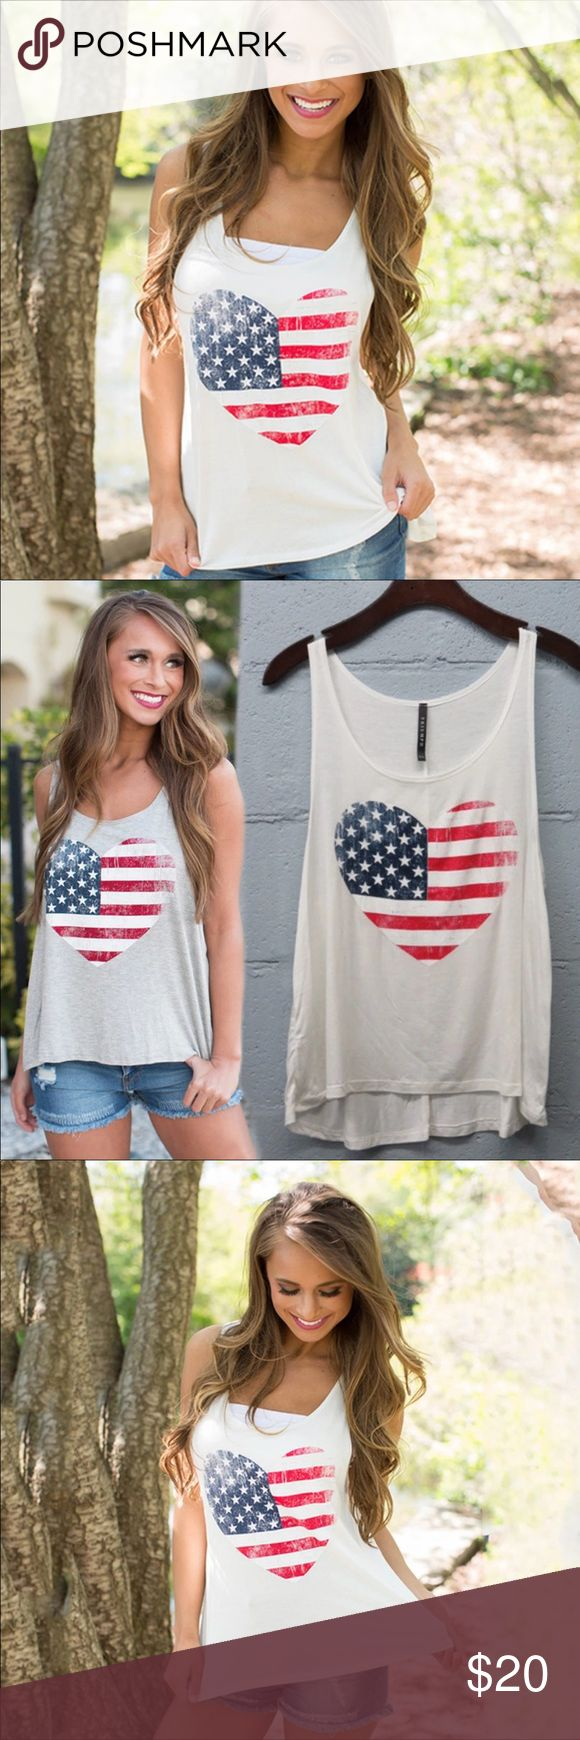 🐎PUT YOUR COWBOY BOOTS ON PATRIOTIC TANK-hot!🐎 Several sizes available tank top white with American flag in heart design-terialCotton Fabric TypeBroadcloth Tops TypeTank Tops DecorationNone Clothing LengthRegular Item TypeTops Descriptions  Size BustLength cminchescminches S8232.28 5521.65  M8633.86 5622.05  L9035.43 5722.44  XL9437.01 5822.83 Tops Tank Tops